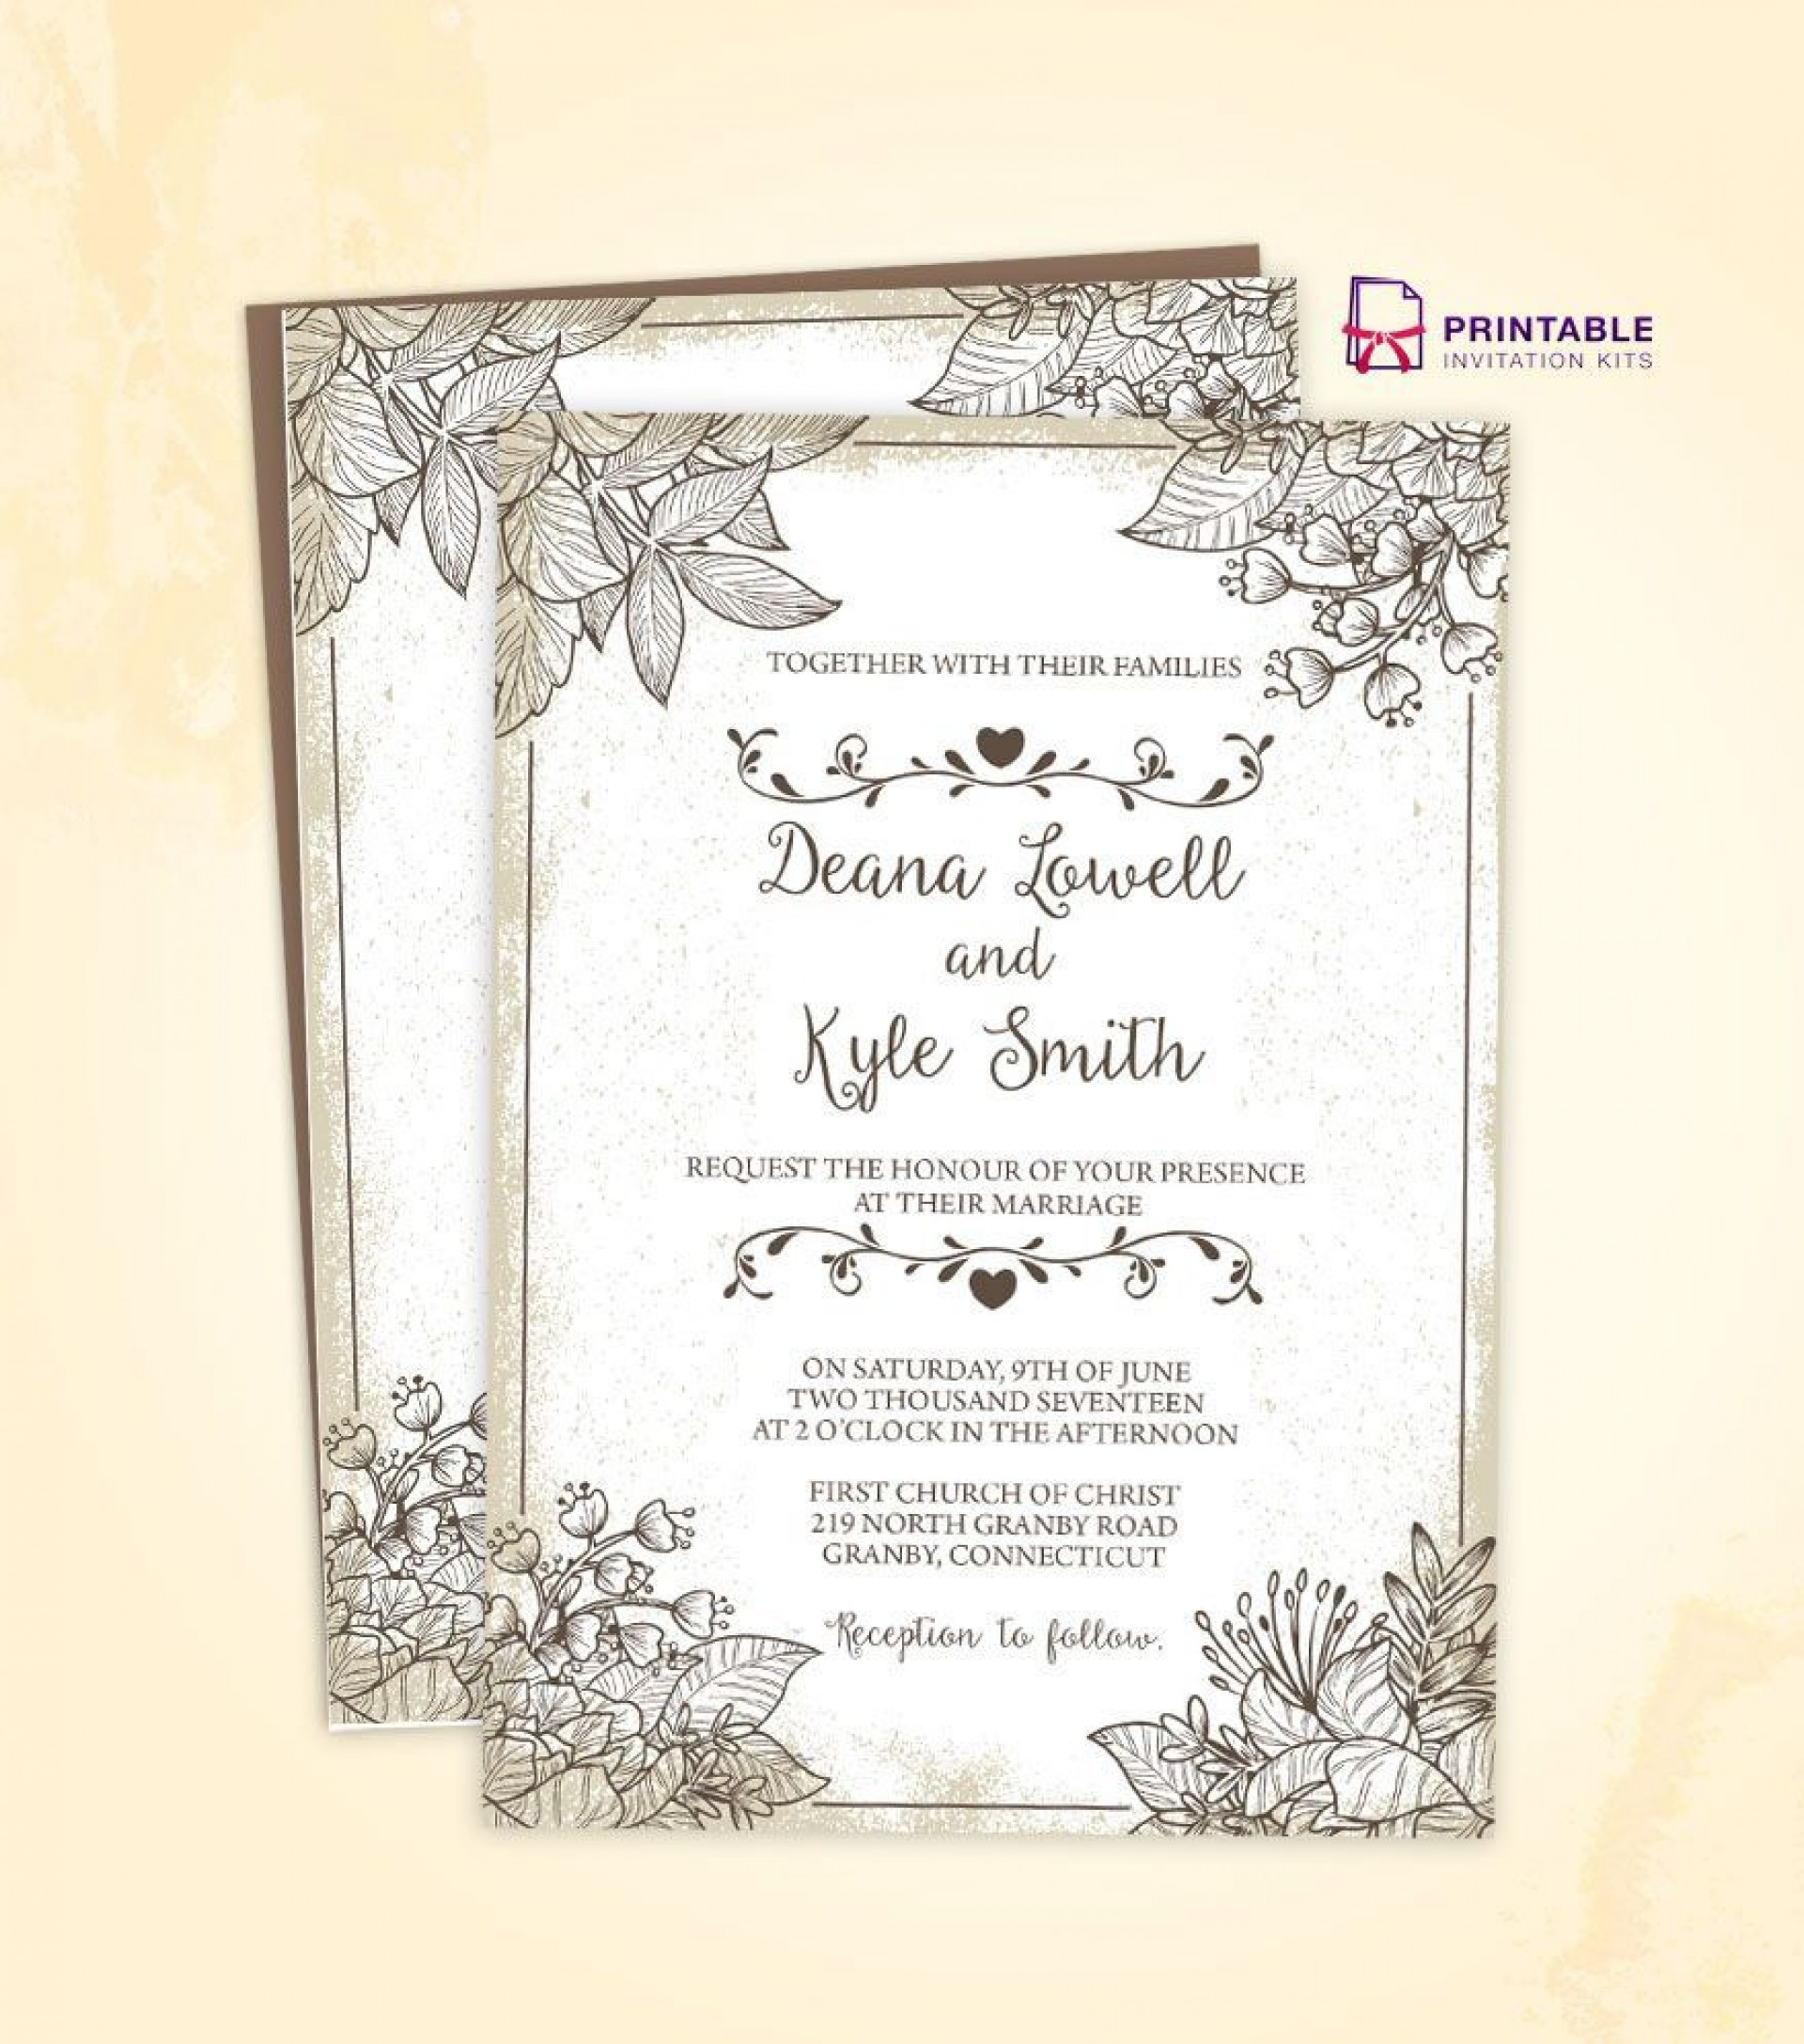 001 Stunning Free Download Marriage Invitation Template Photo  Card Design Psd After Effect1920